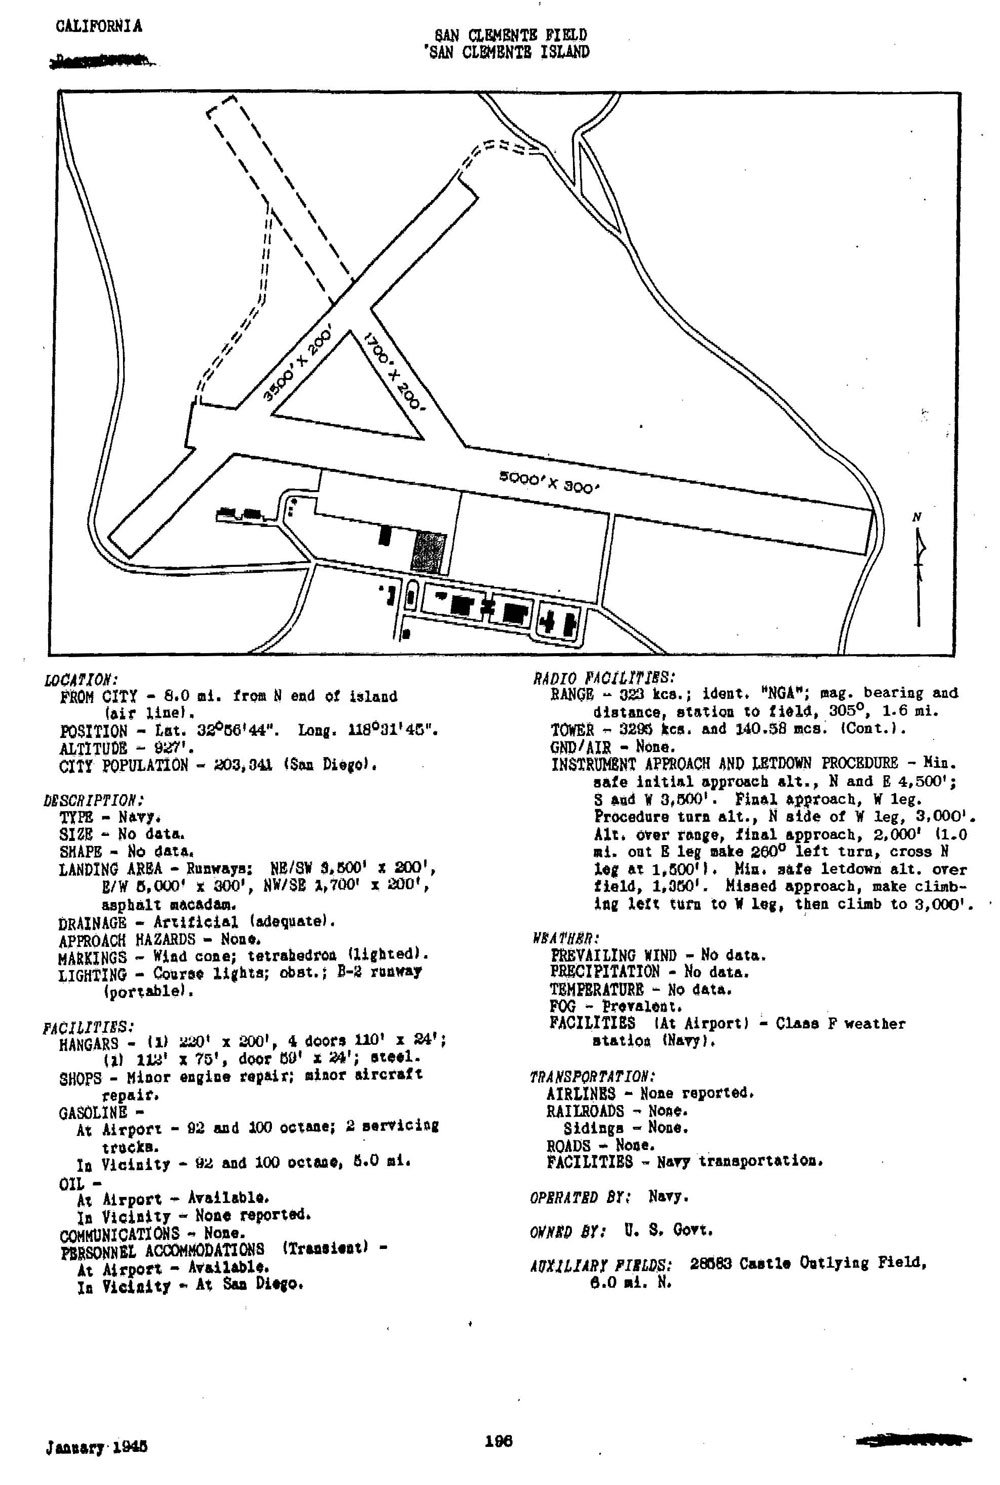 Extract Us Army Air Forces Airfield Directory January 1945